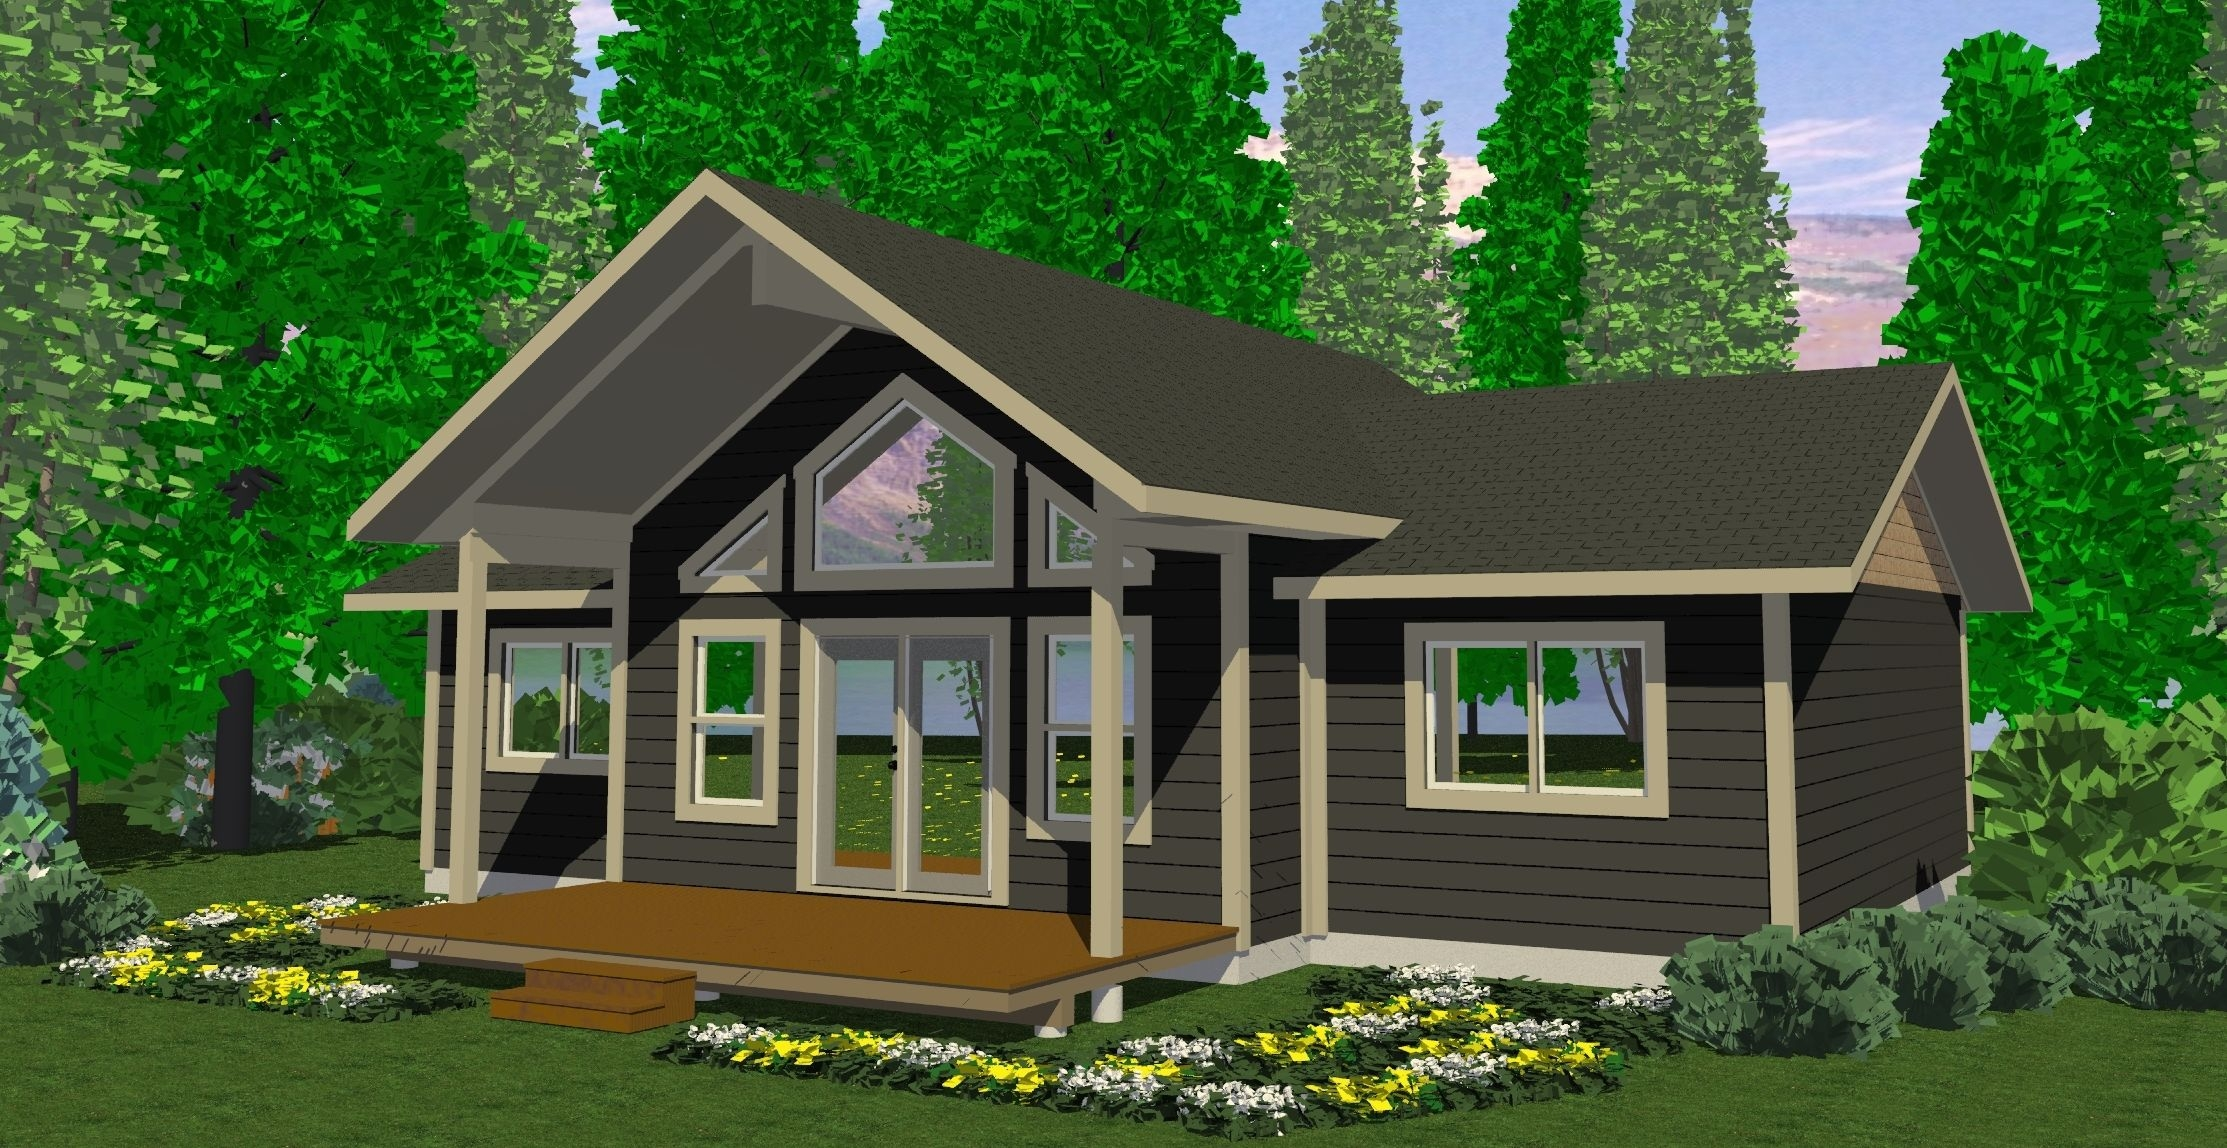 Small 3 Bedroom House Small Modern Cabins Small Cabins And Cottages Plans 3